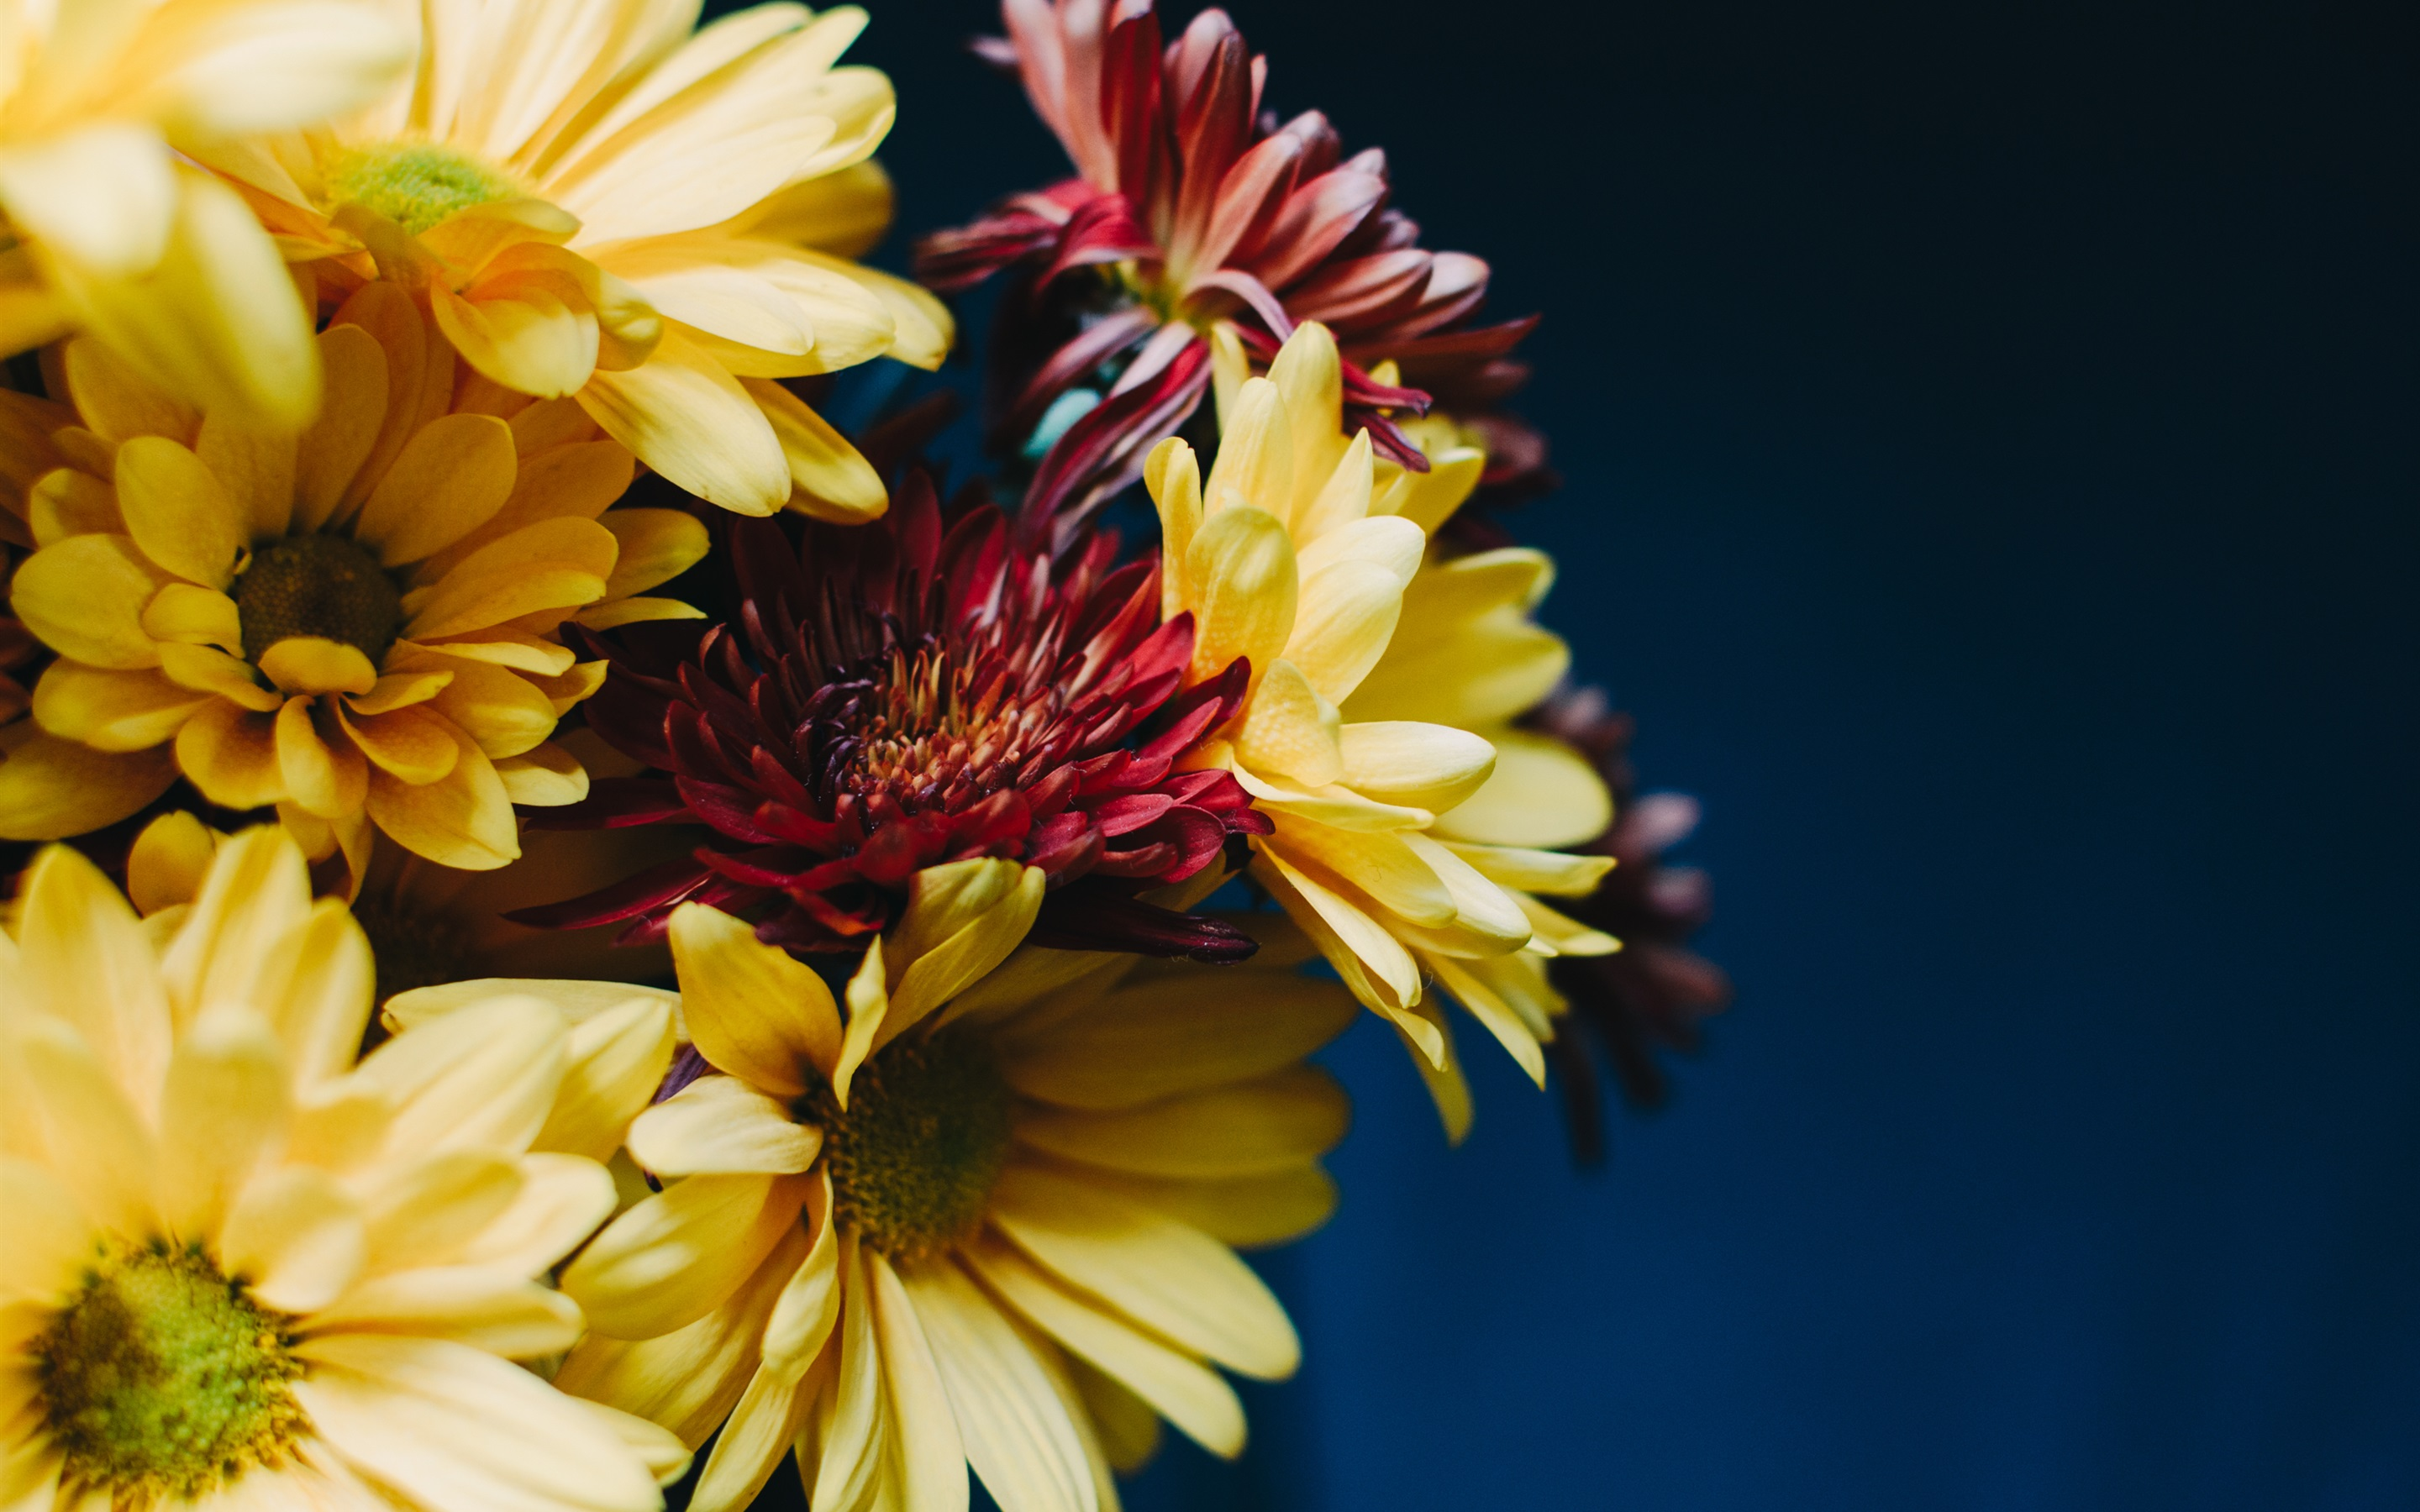 Wallpaper Gerberas Yellow And Red Flowers Bouquet 2880x1800 Hd